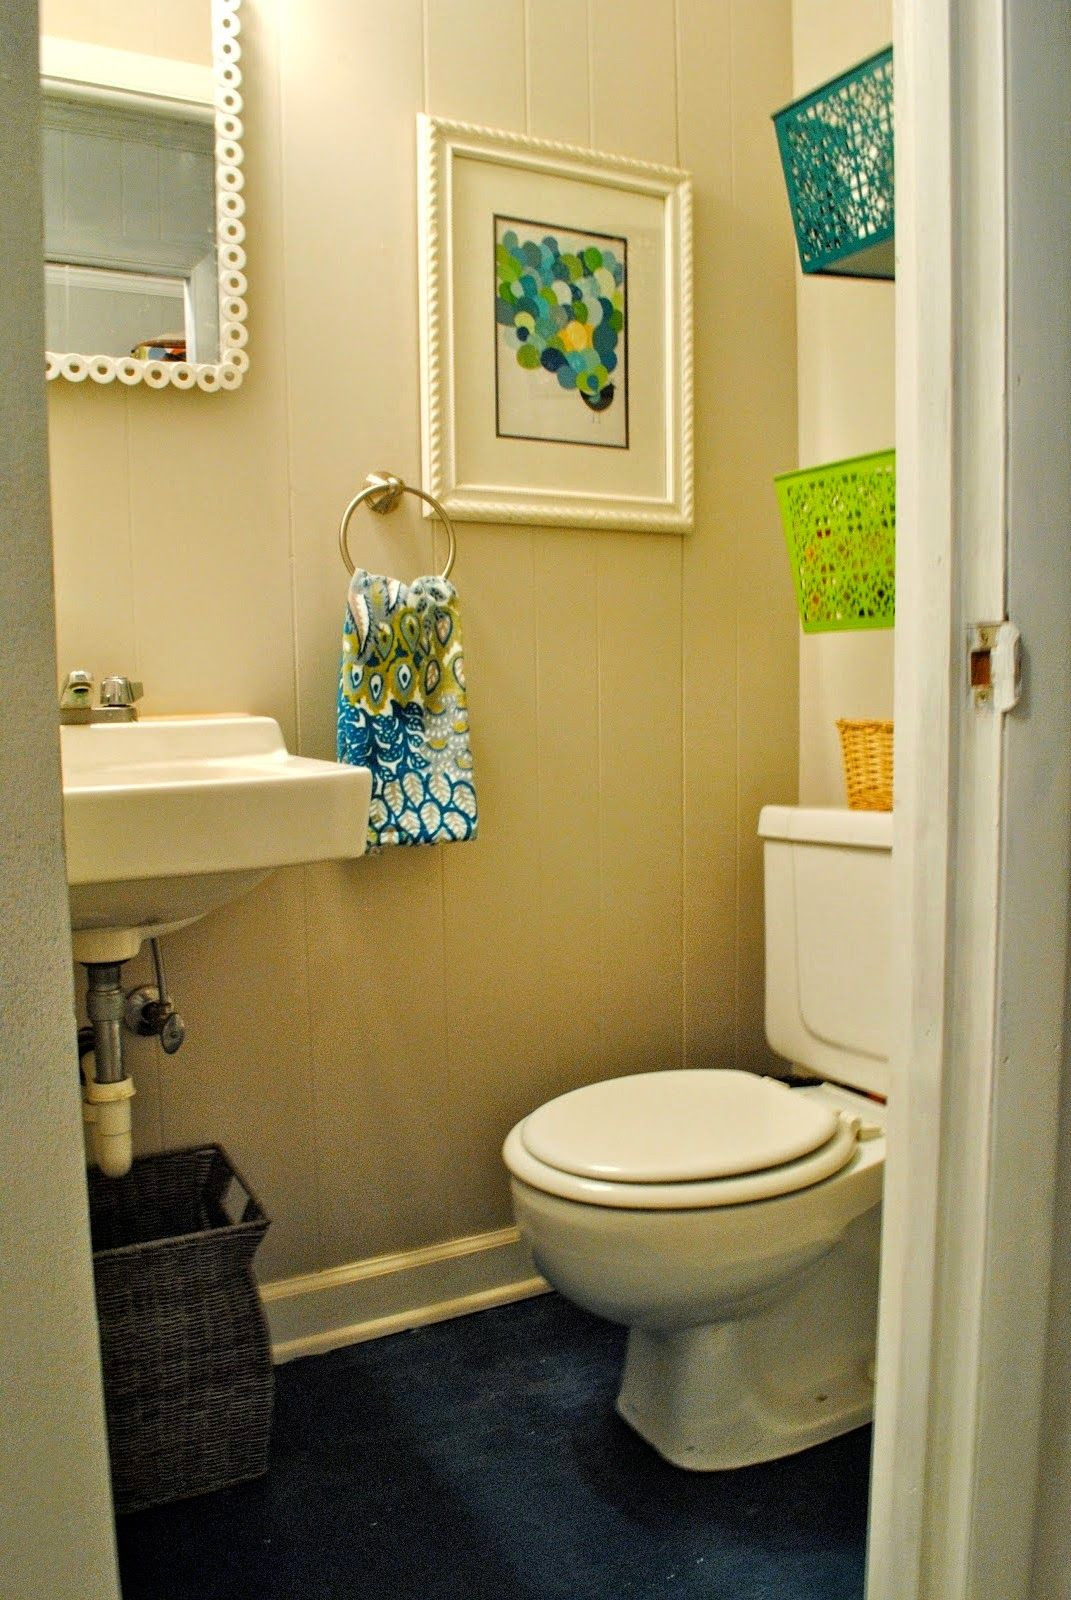 Bathroom Decorating Ideas Pictures for Small Bathrooms Inspirational 30 Small Bathroom Decorating Ideas with